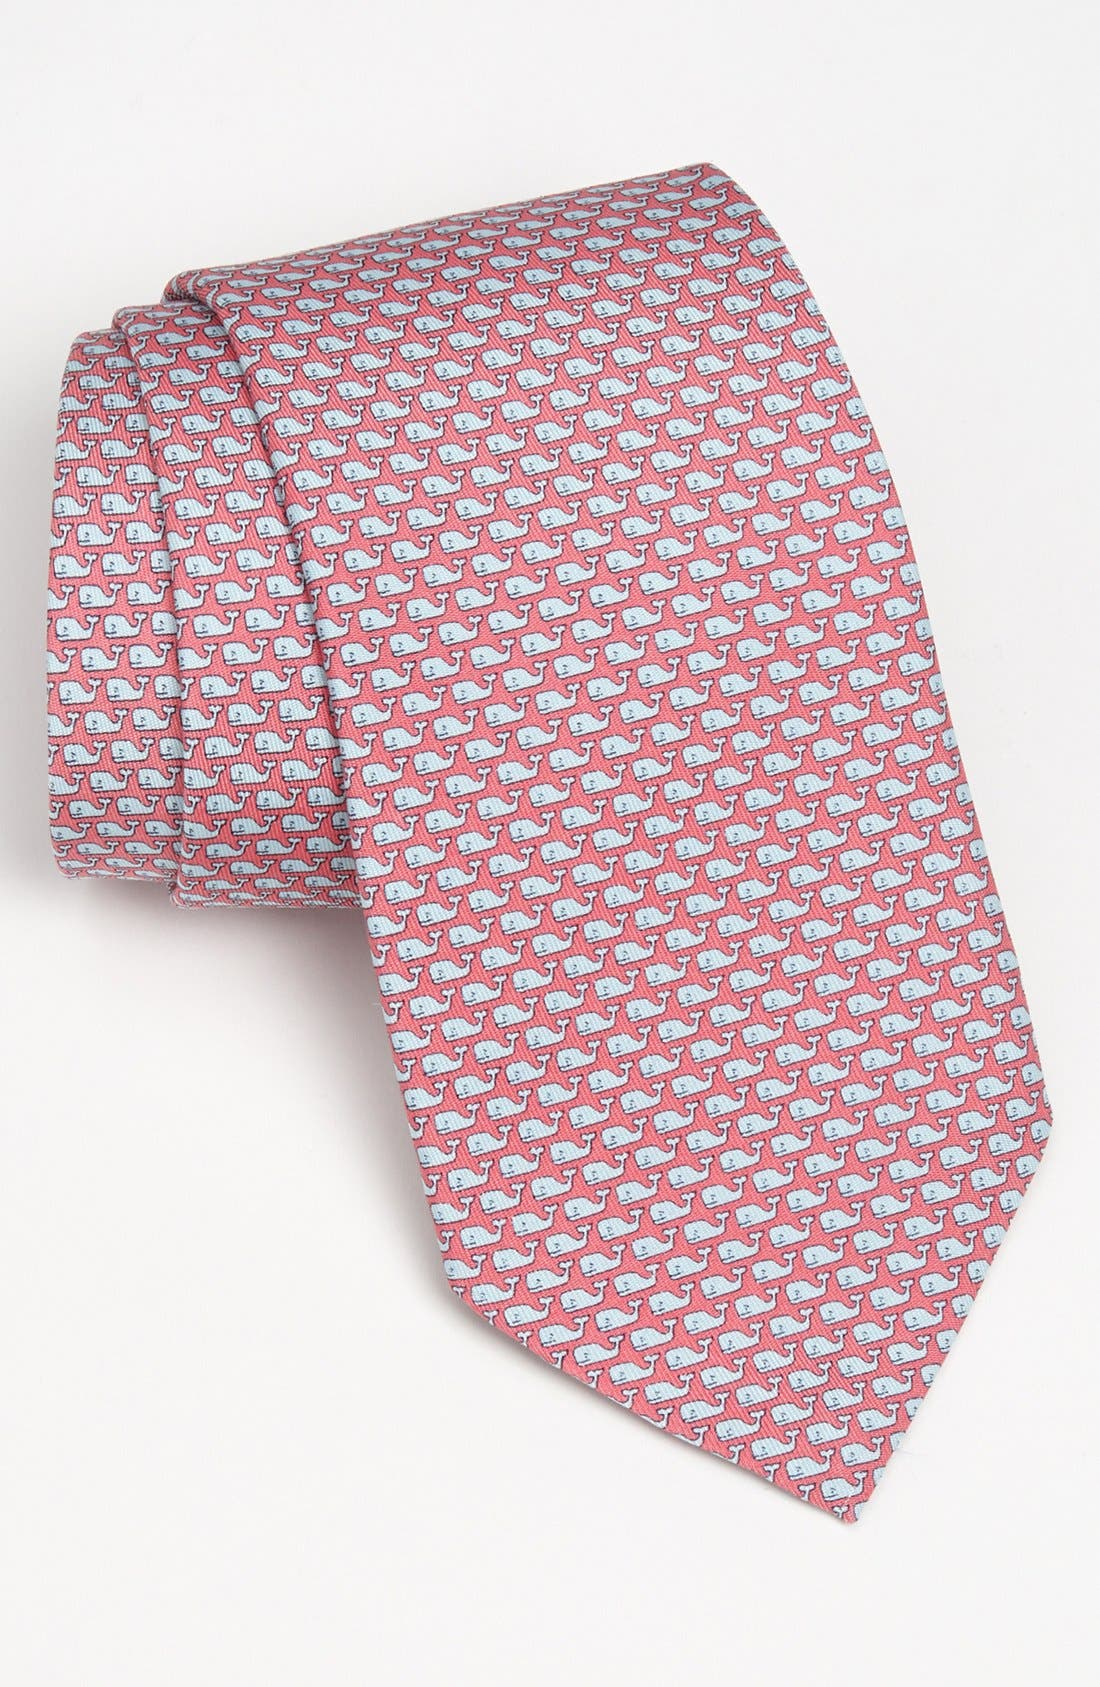 Alternate Image 1 Selected - Vineyard Vines 'Whale' Silk Tie